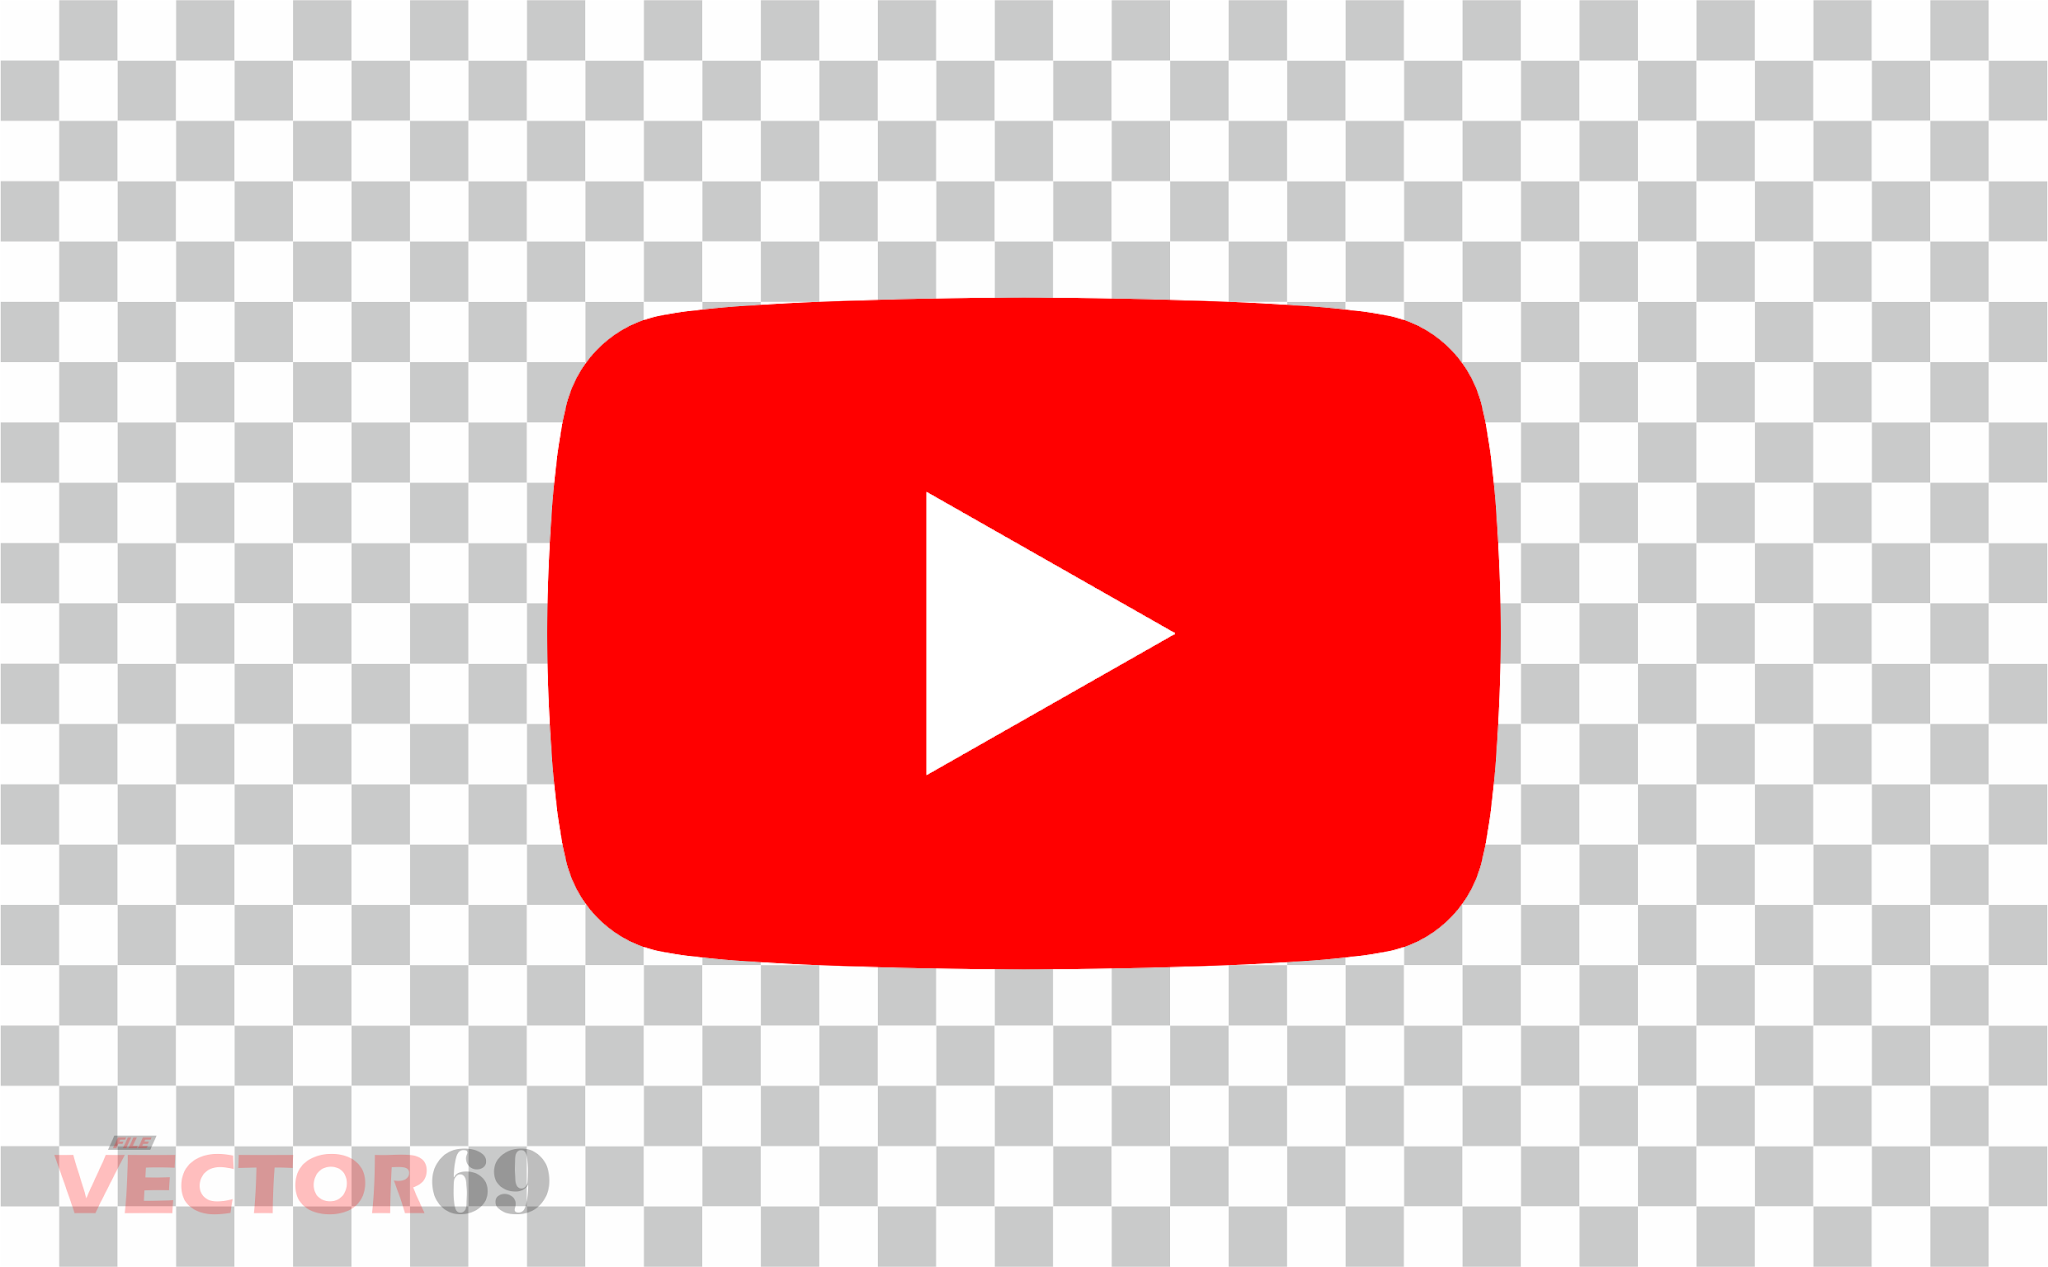 Youtube Icon - Download Vector File PNG (Portable Network Graphics)